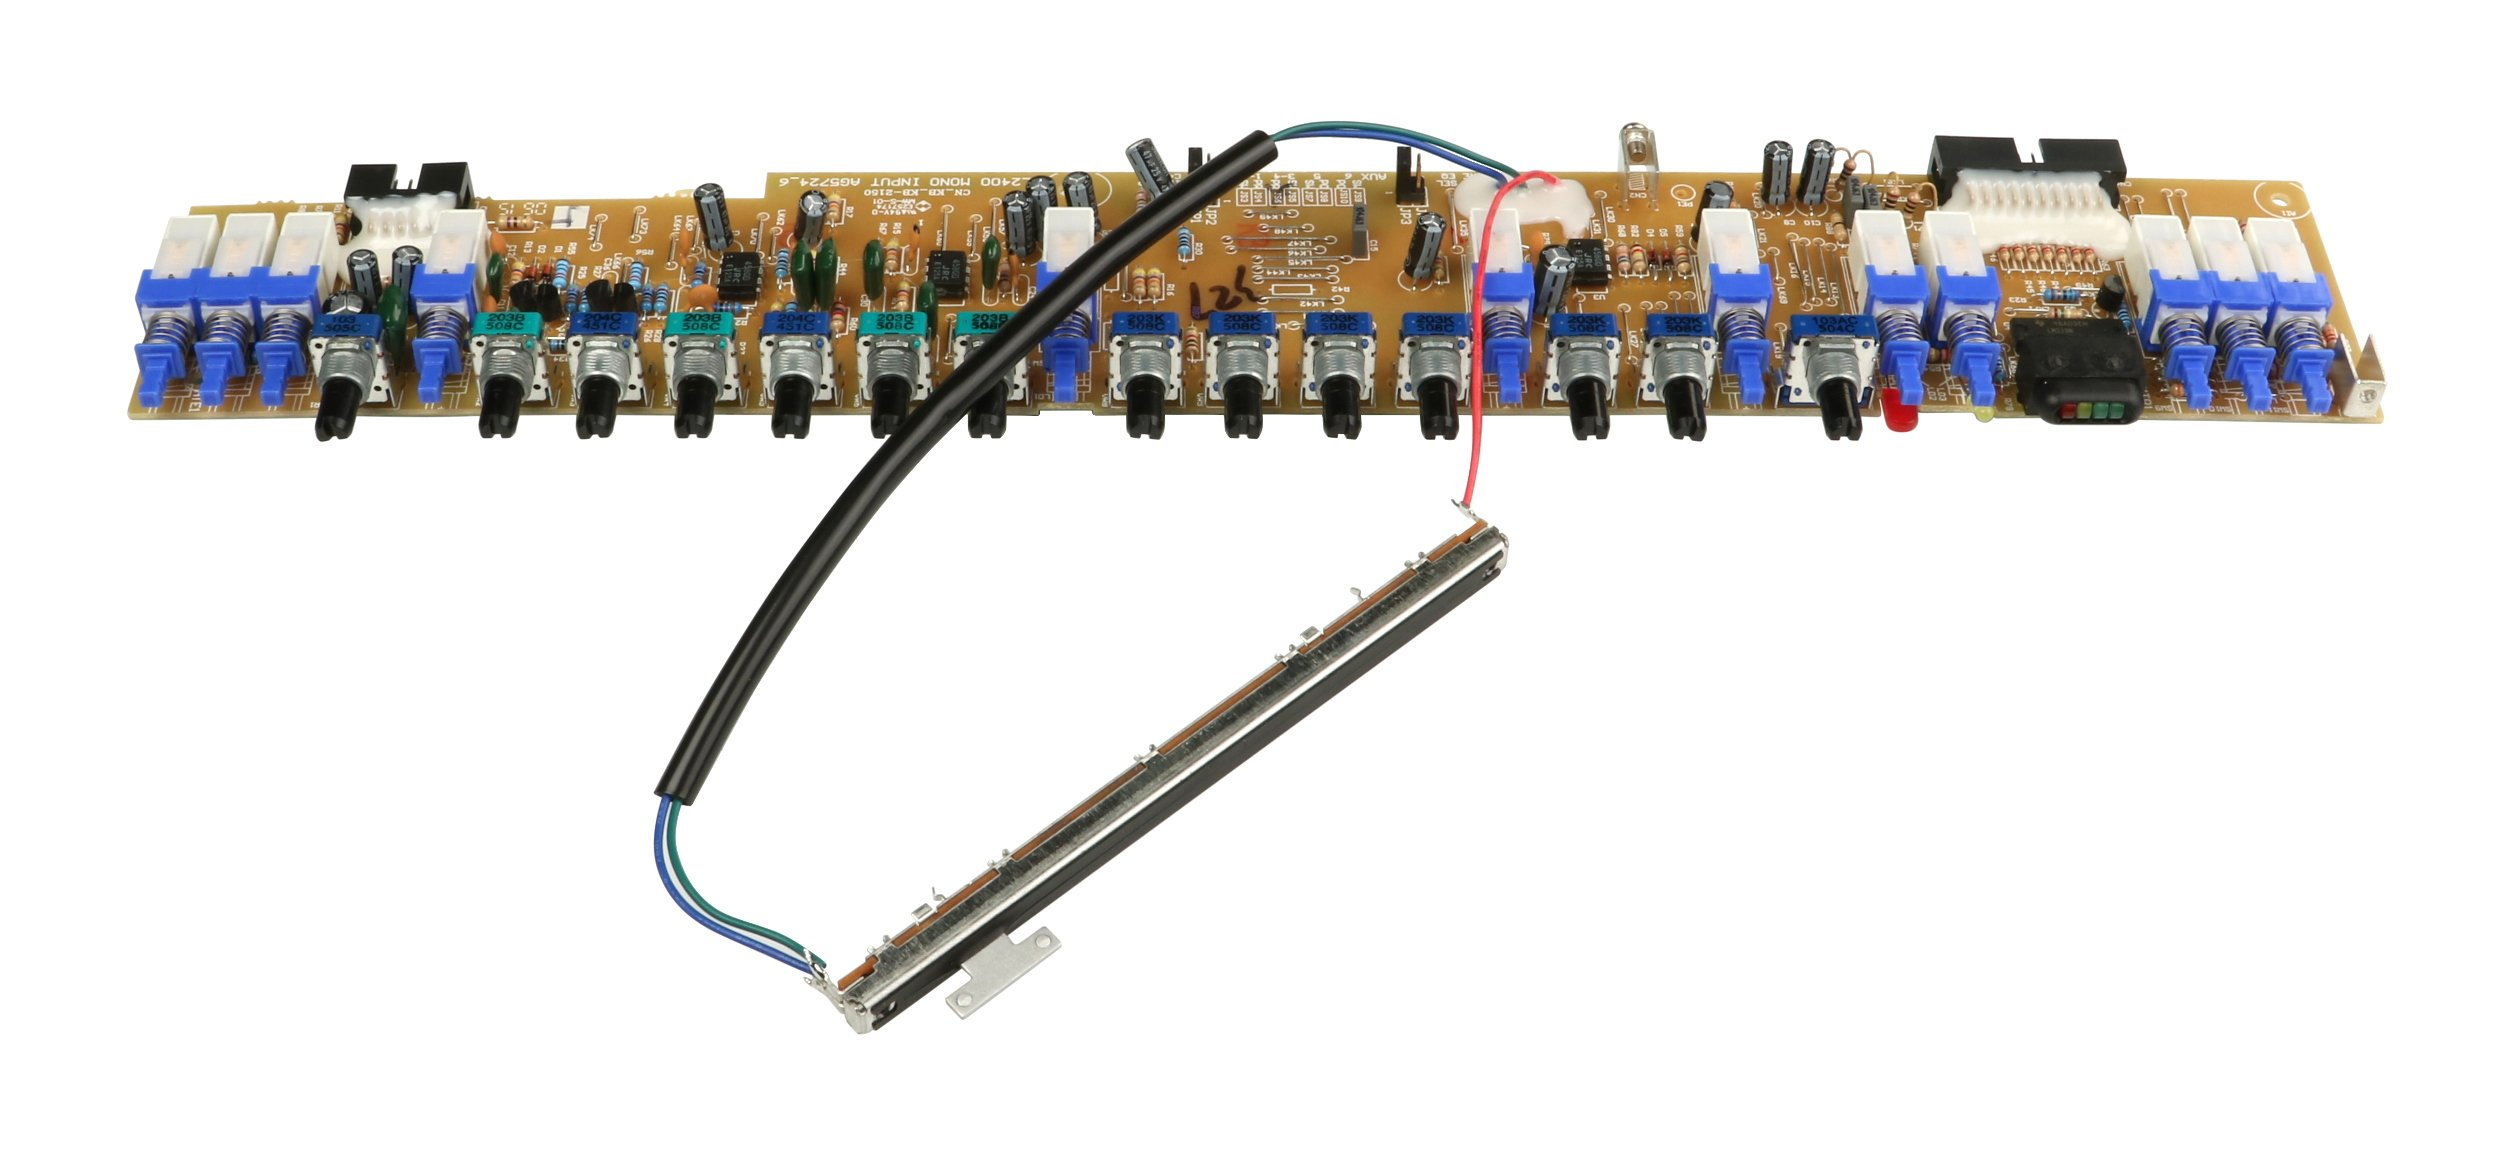 Mono Input Channel Strip for GL2400